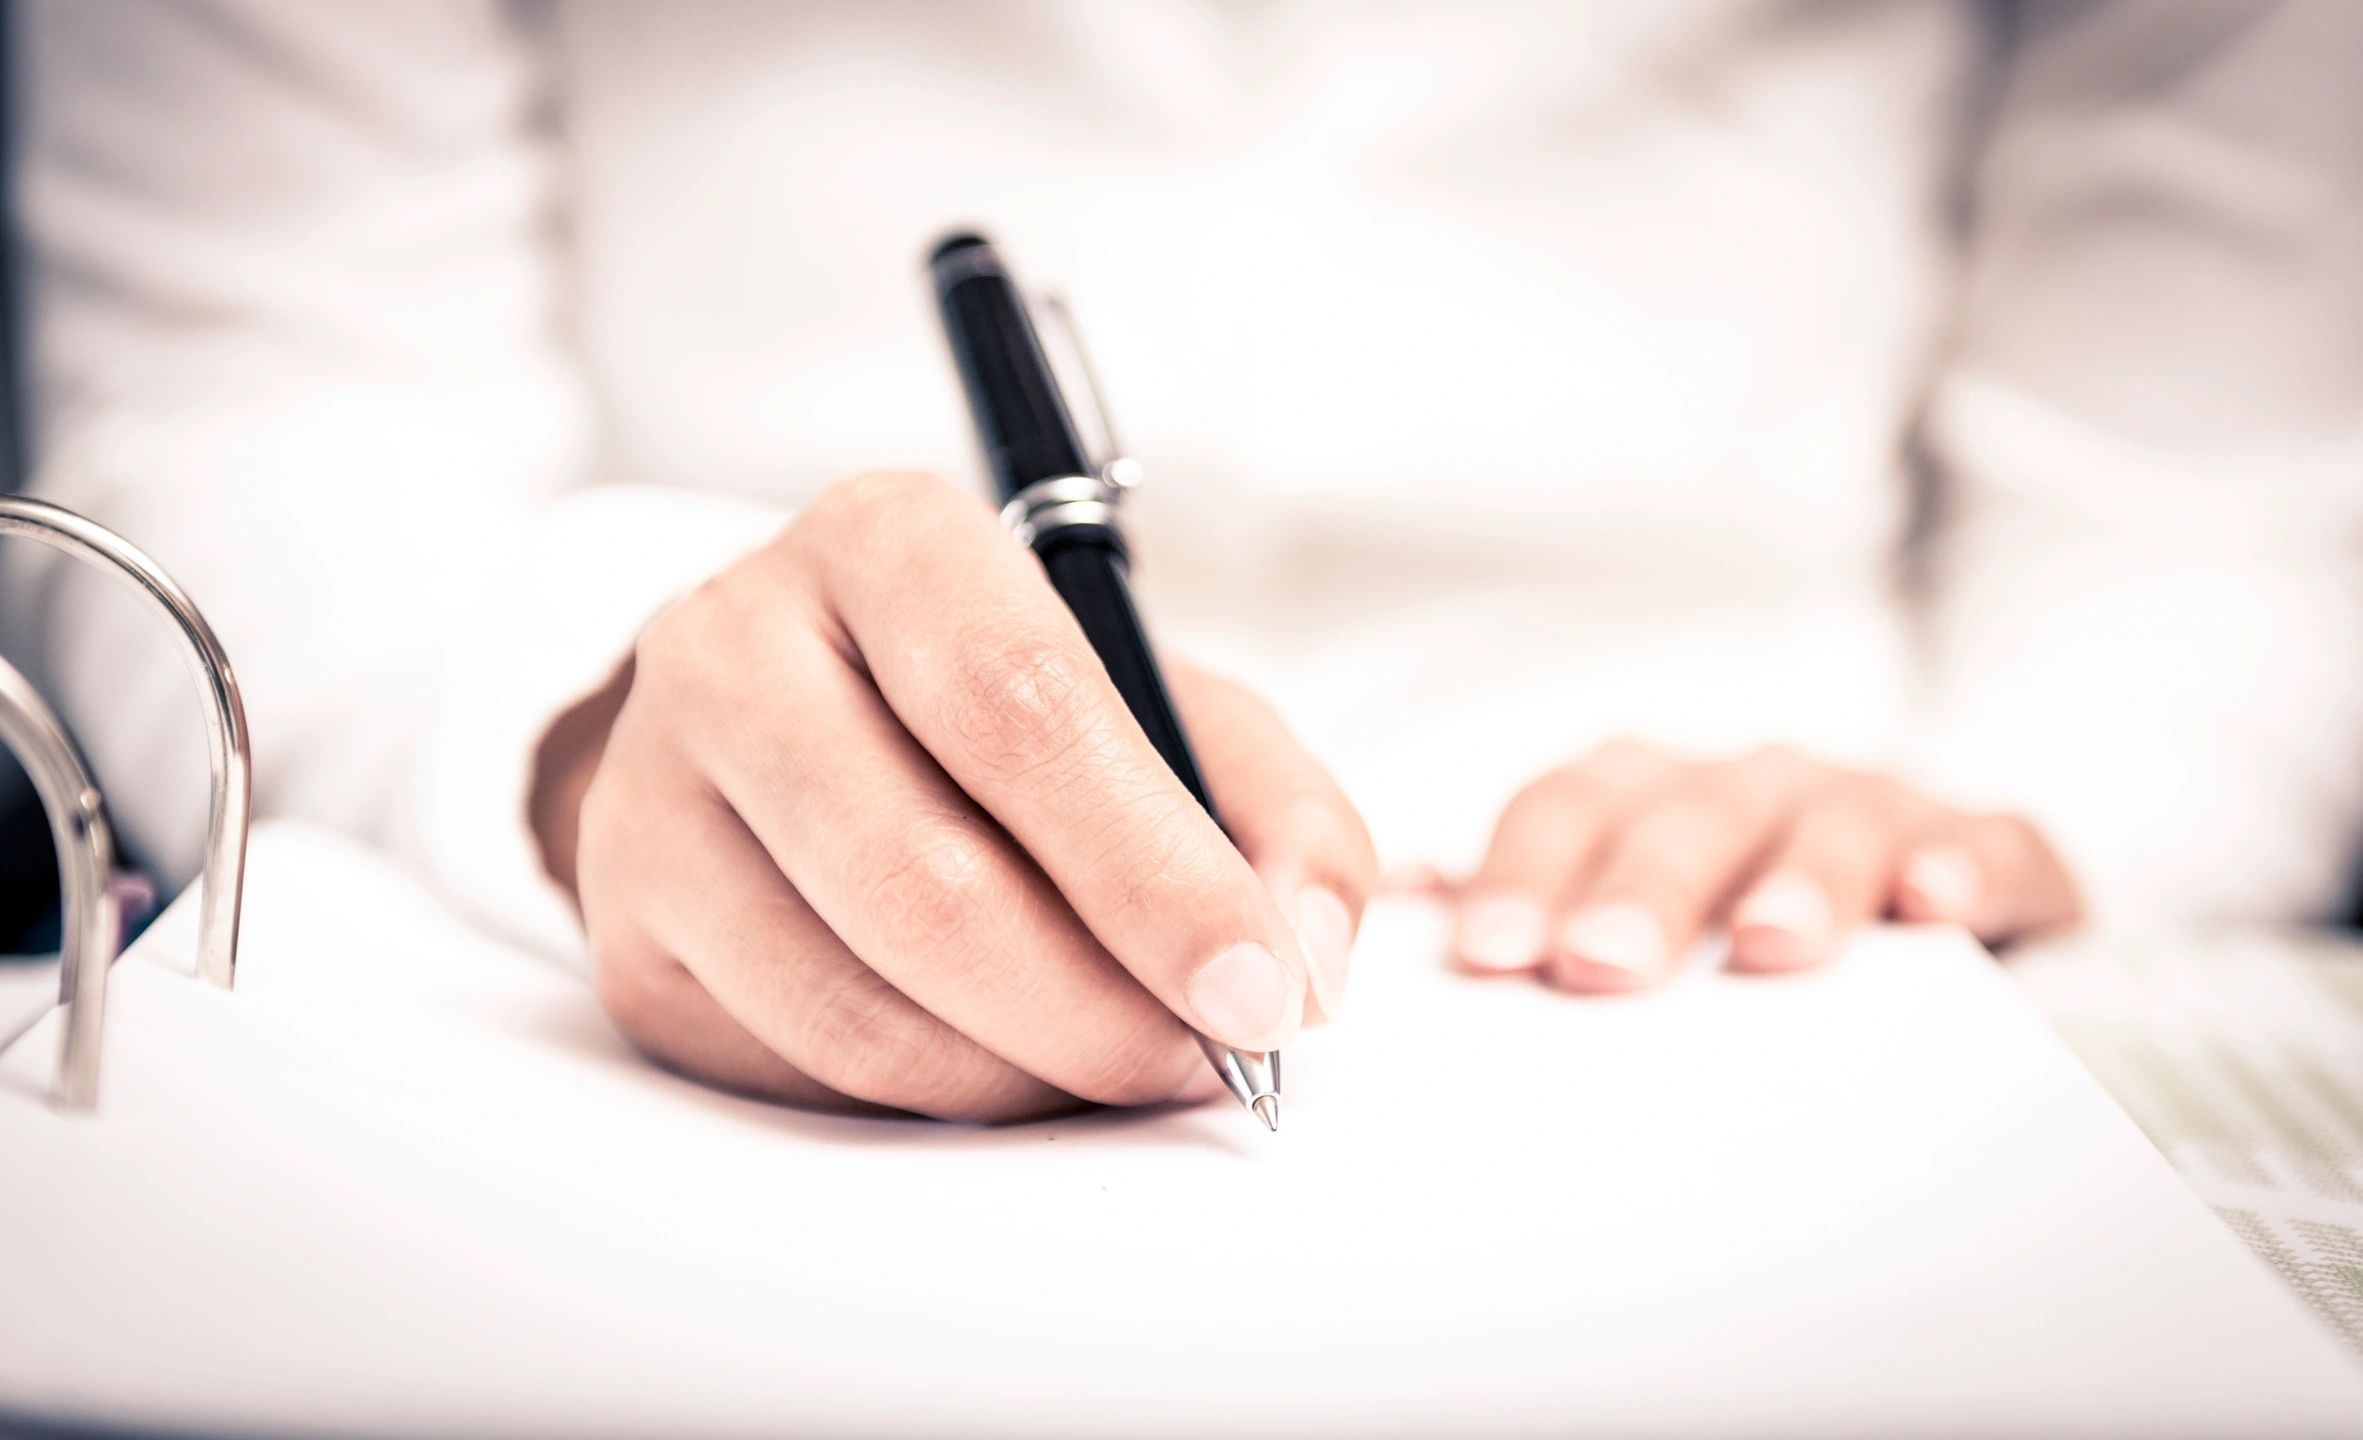 Tips for better writing assignments in college